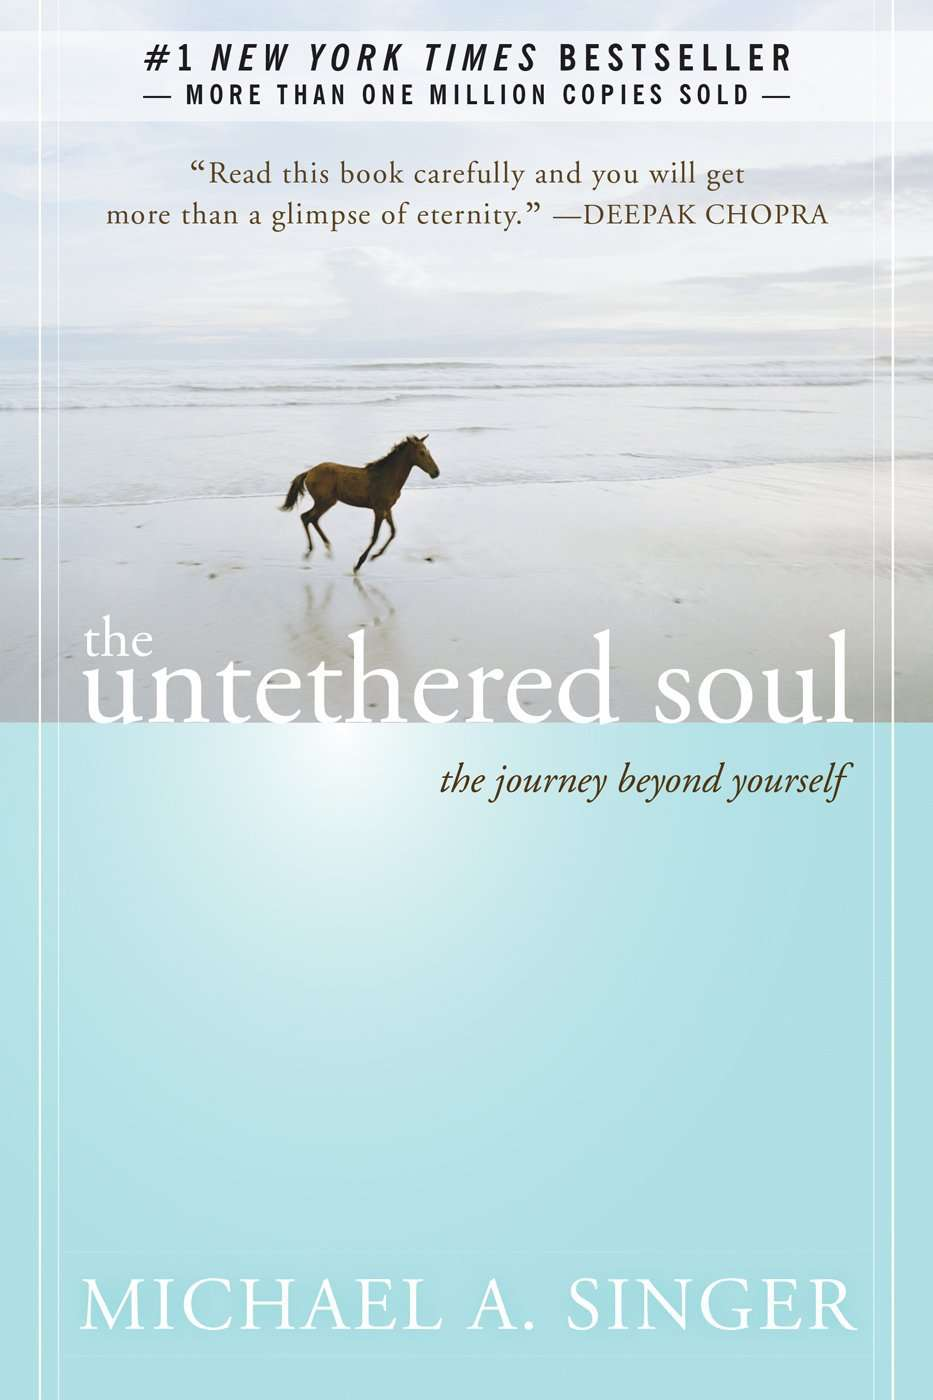 The Untethered Soul: The Journey Beyond Yourself: Michael A. Singer: Paperback